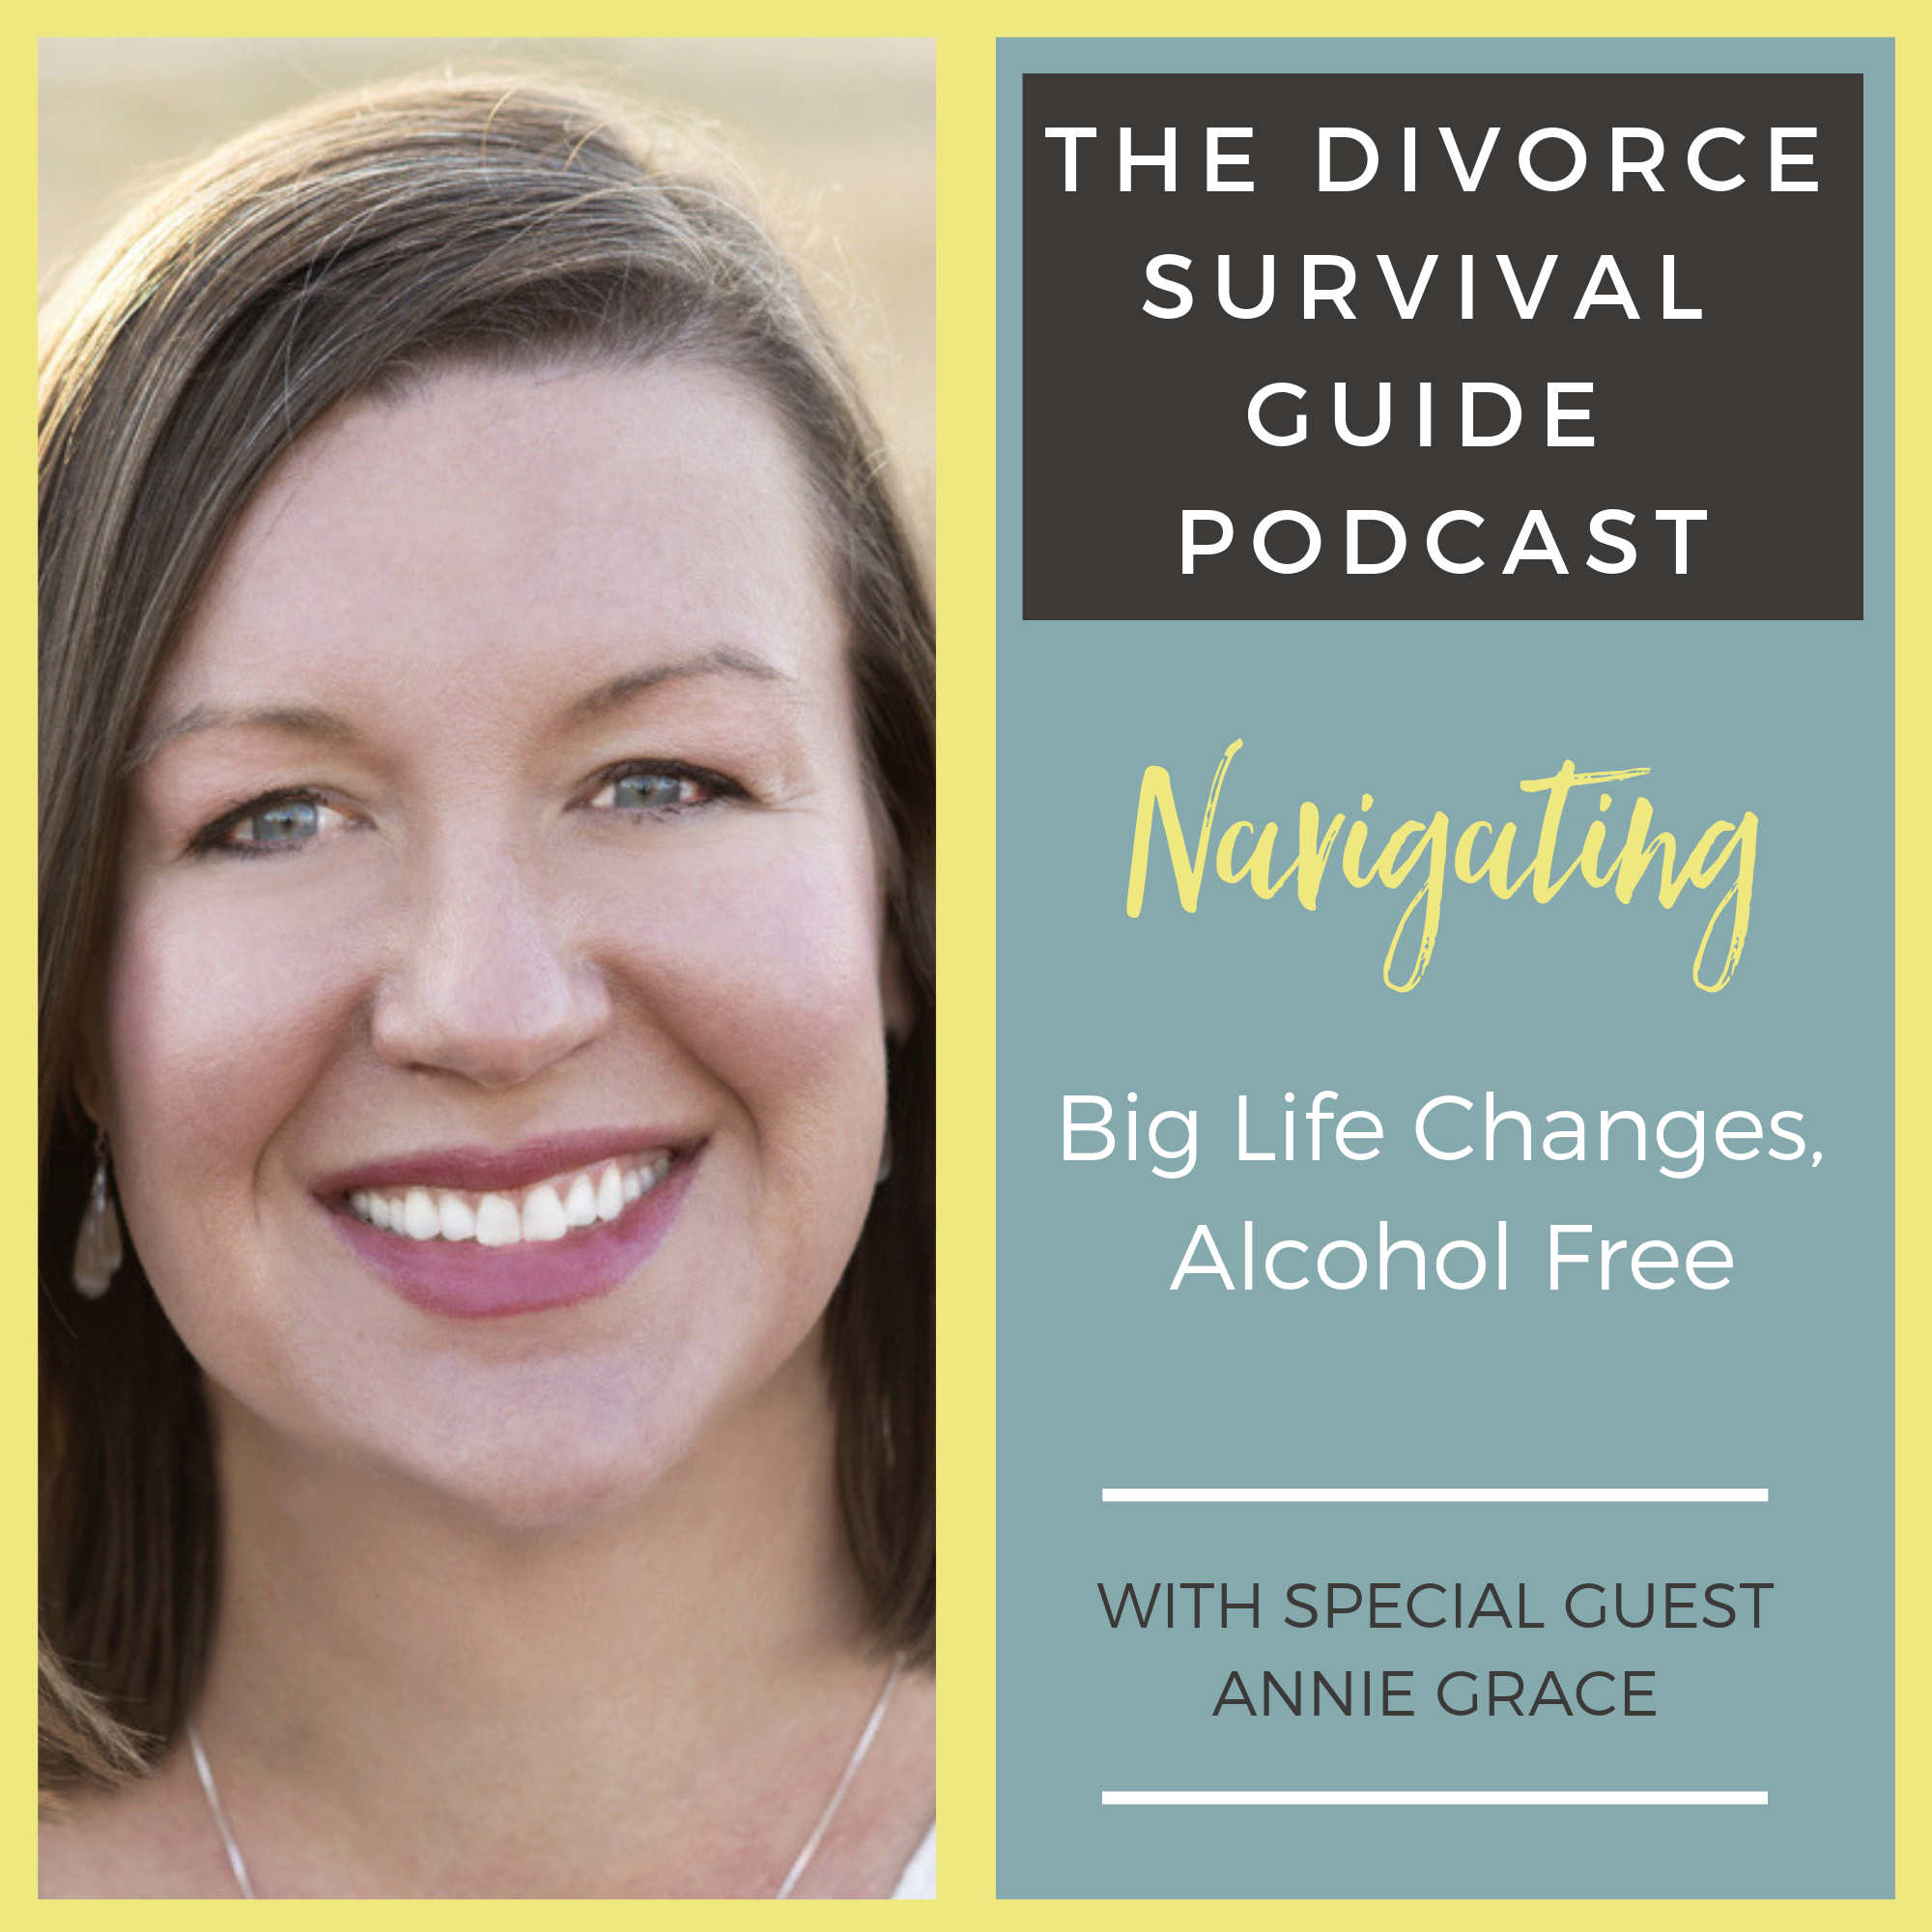 The Divorce Survival Guide Podcast - Navigating Big Life Changes, Alcohol Free with Annie Grace